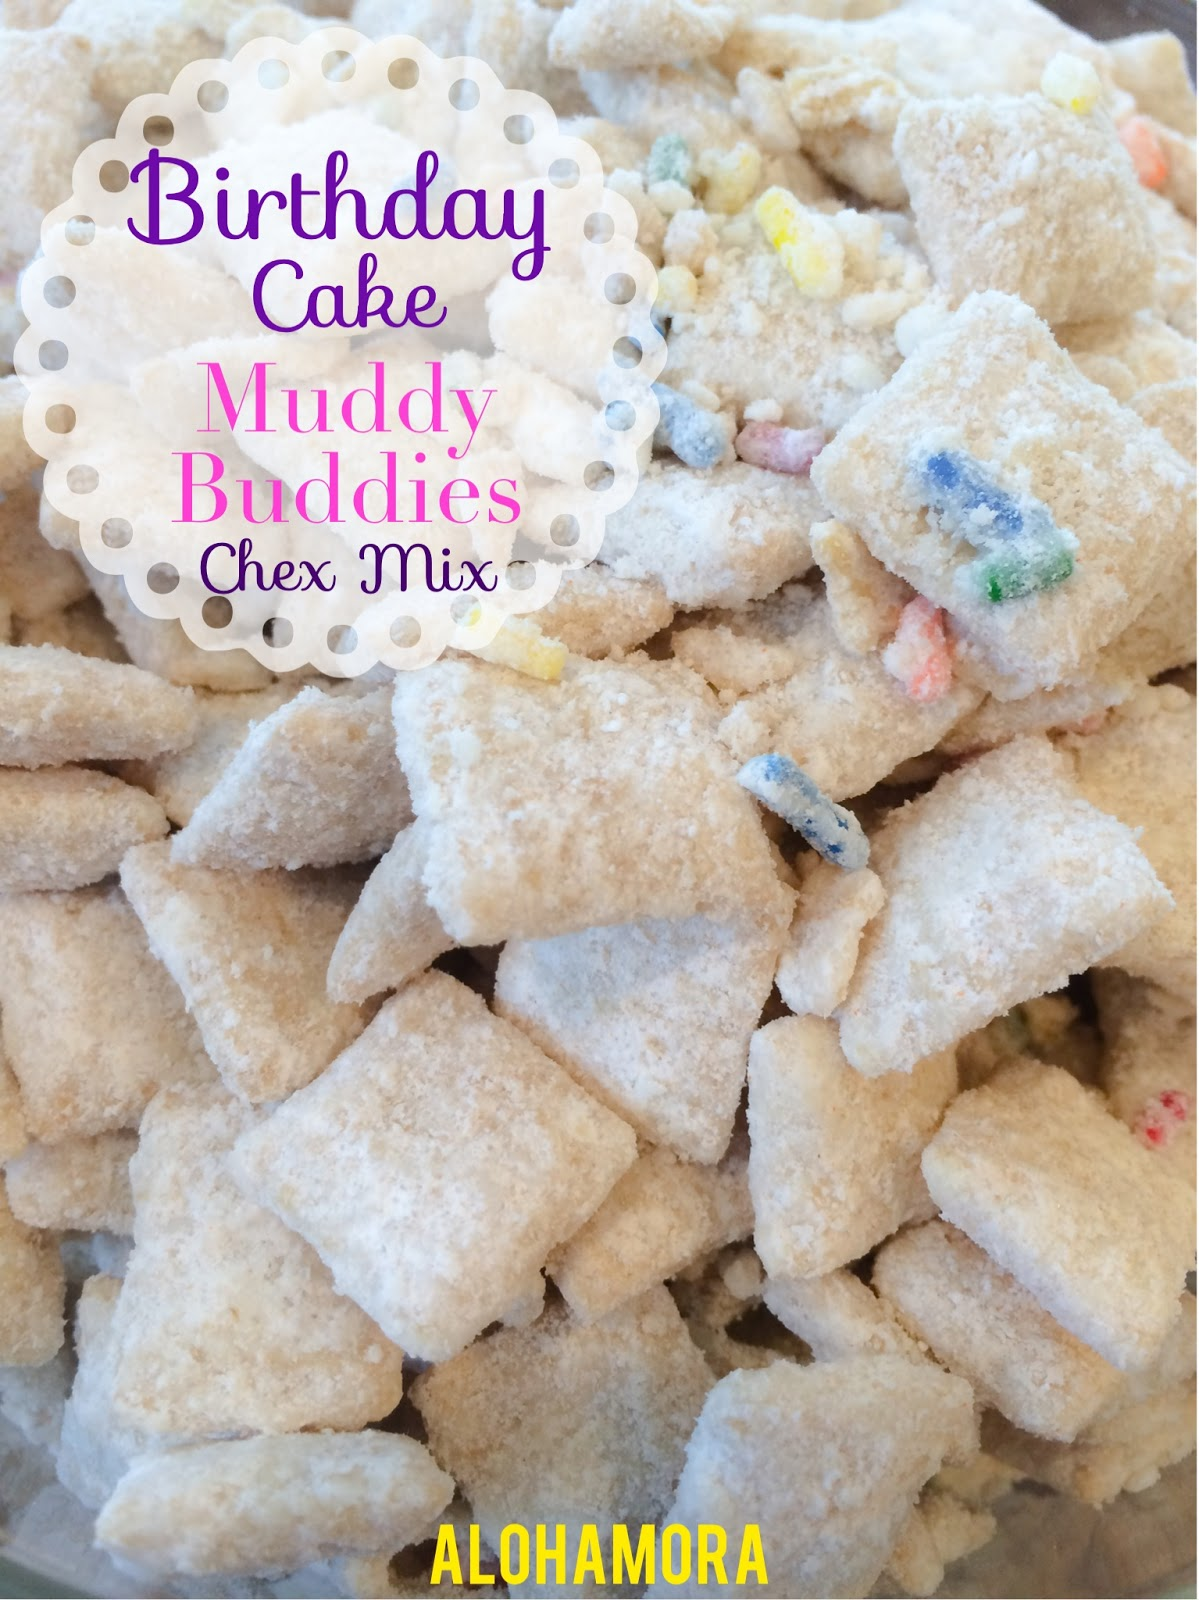 Birthday Cake Muddy Buddies, Puppy Chow, Chex Mix that is quick and easy to make, and a perfect nut free, egg free treat everyone can enjoy.  It could easily be gluten free.  Alohamora Open a Book http://www.alohamoraopenabook.blogspot.com/